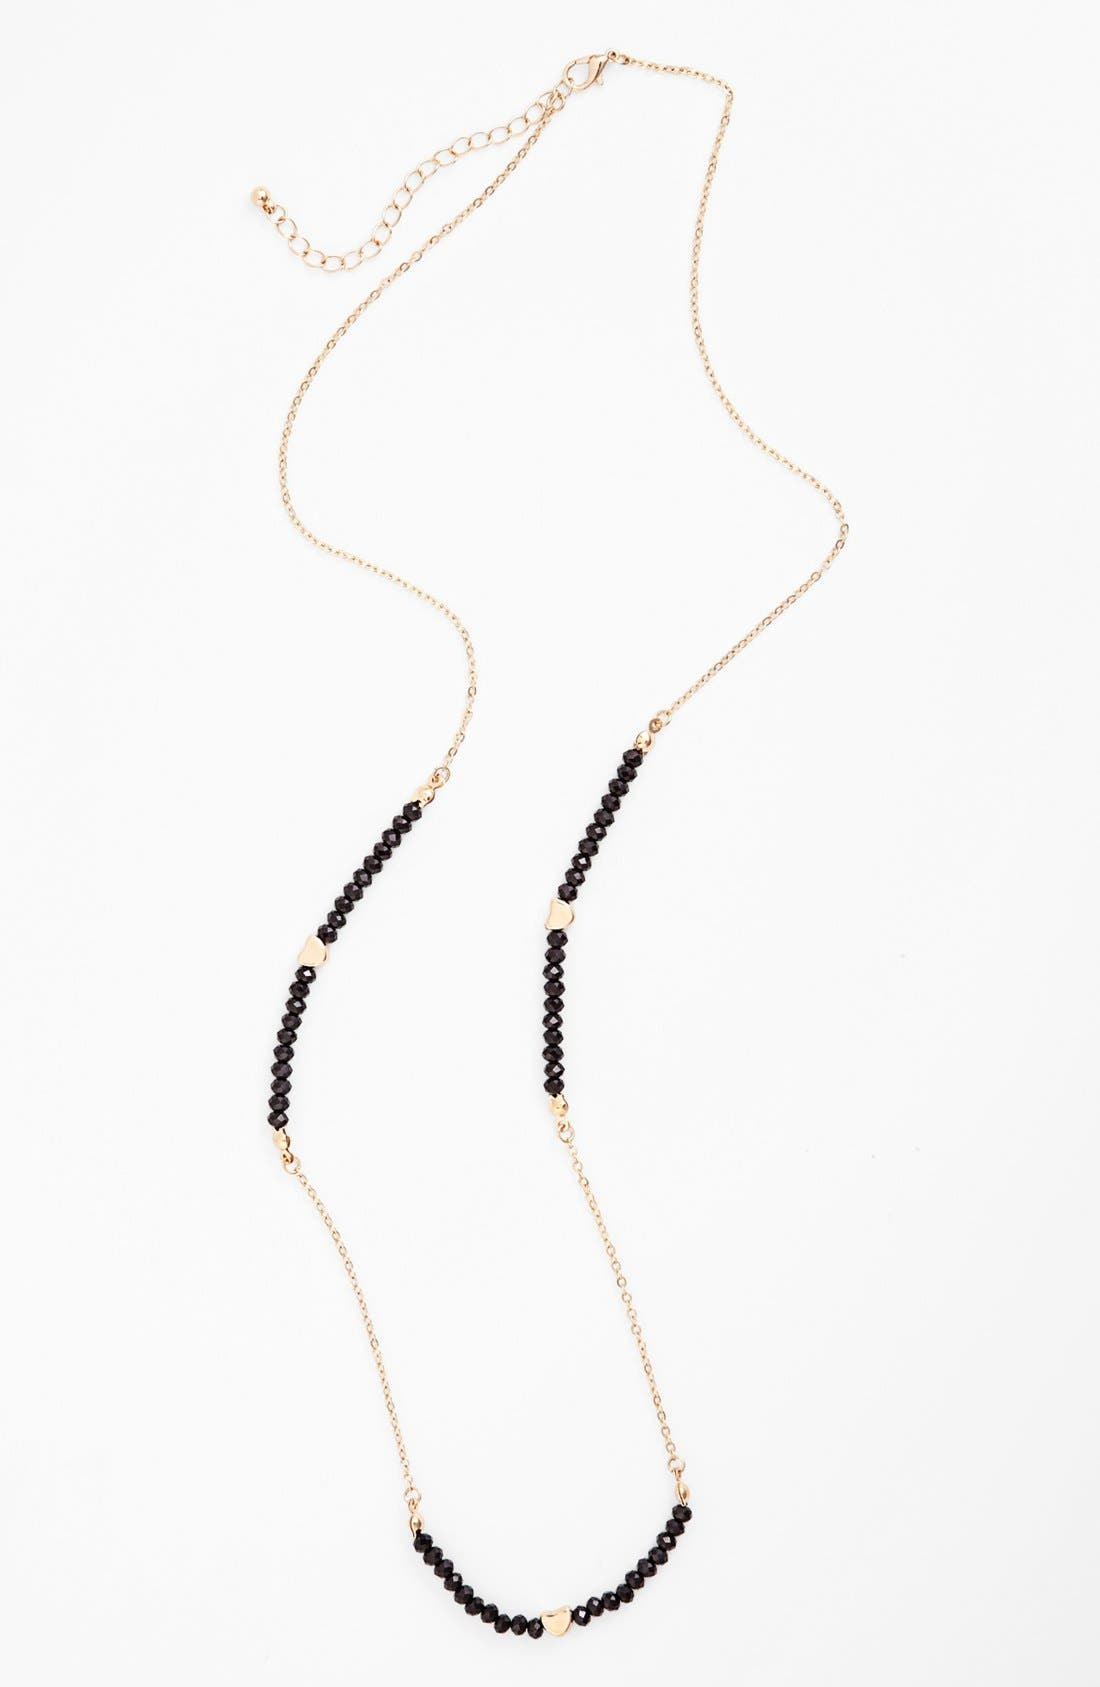 Alternate Image 1 Selected - Stephan & Co. Beaded Chain Necklace (Juniors) (Online Only)